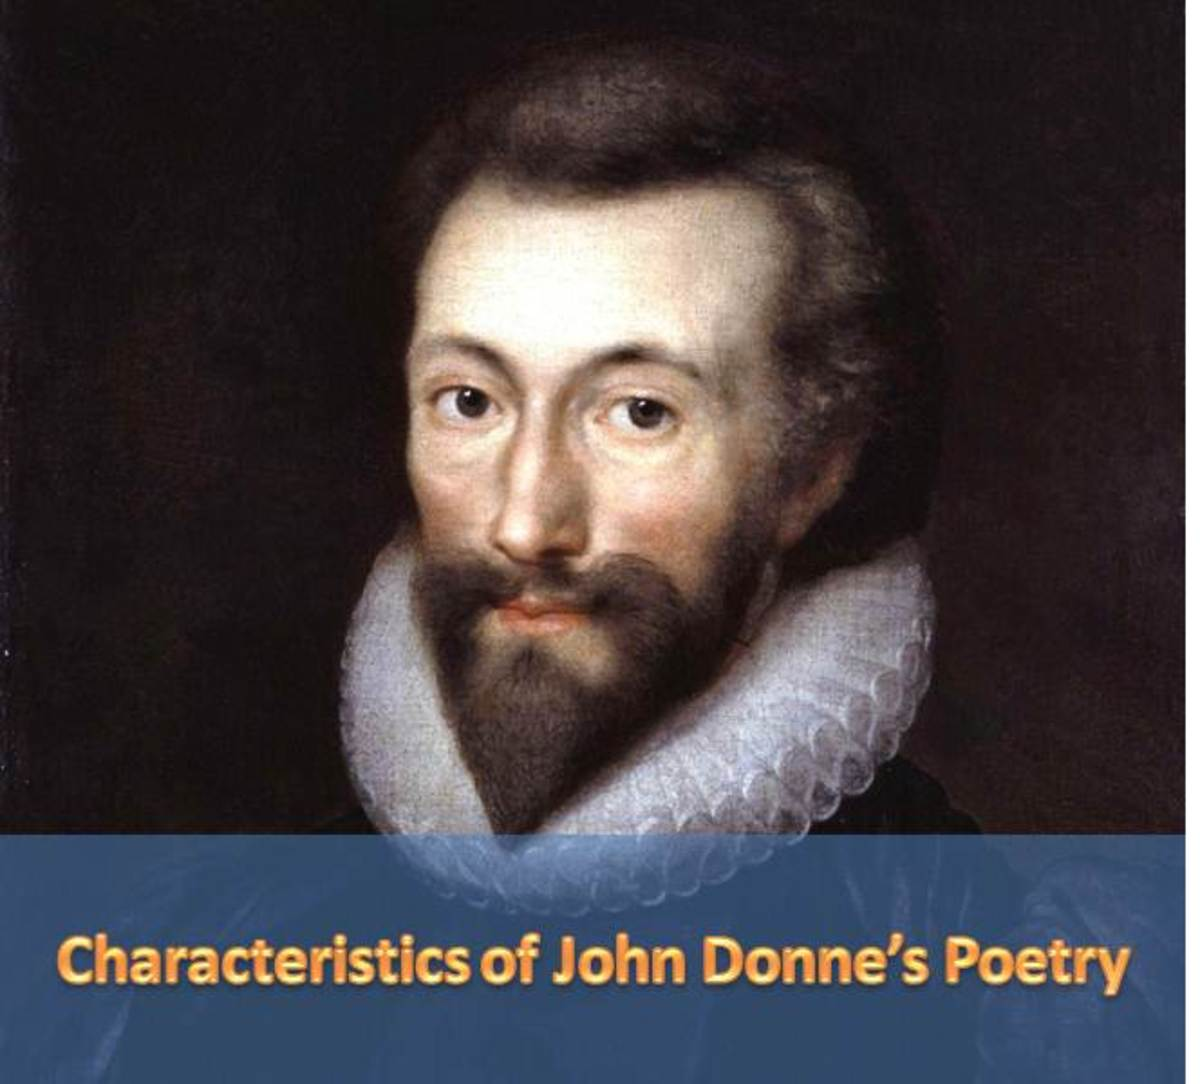 Characteristics of John Donne's Poetry